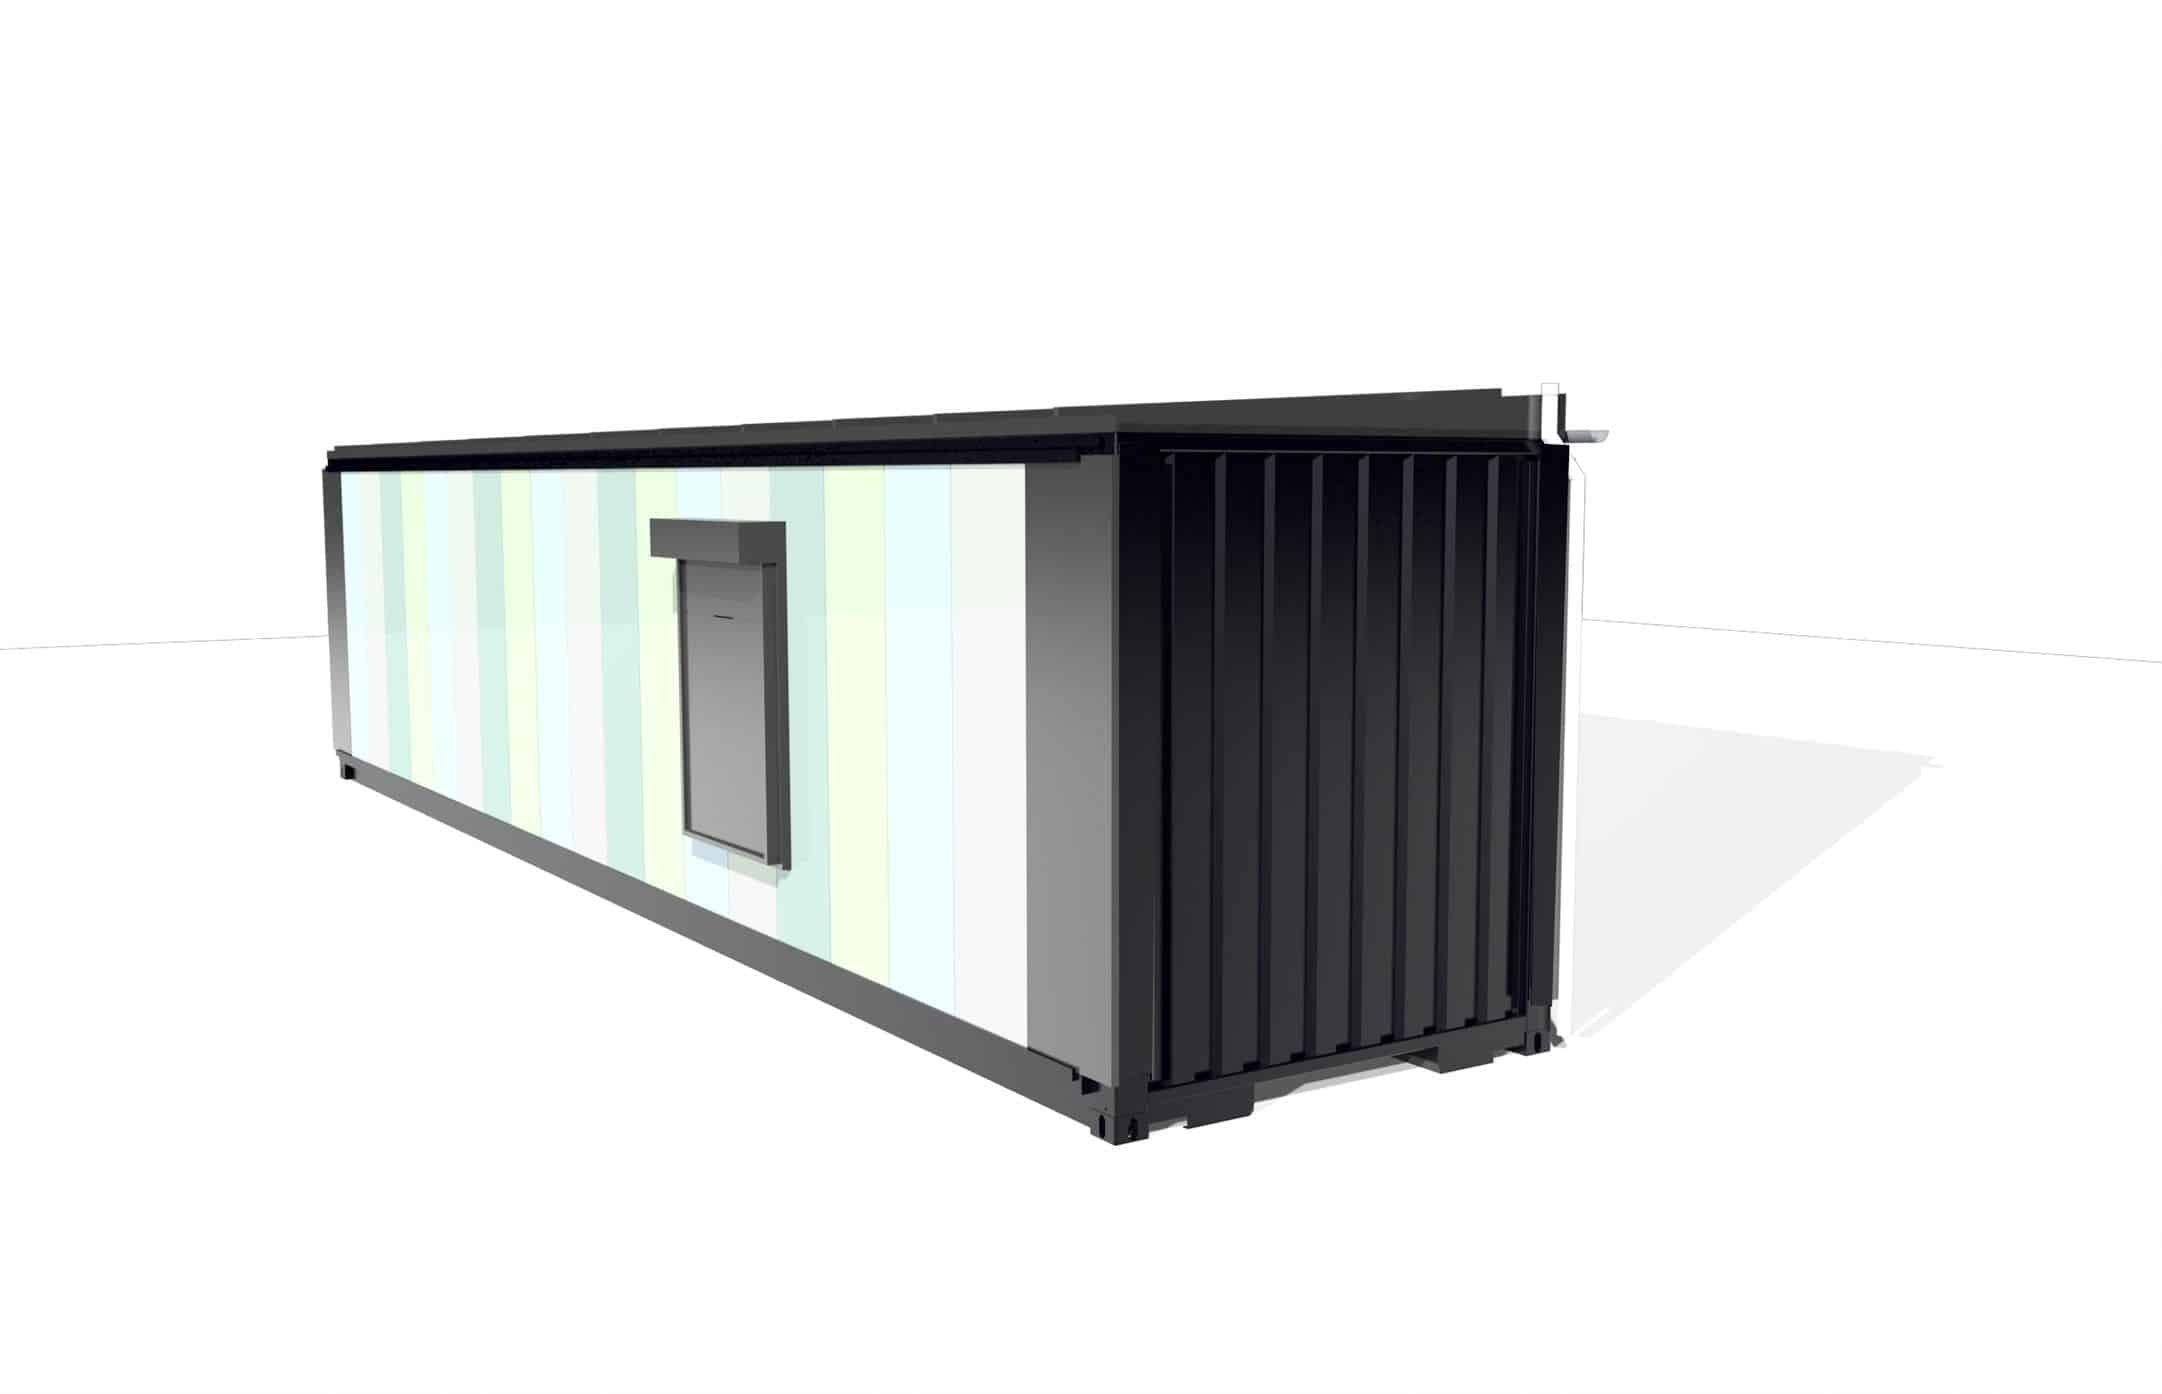 Concept design of shipping container conversion